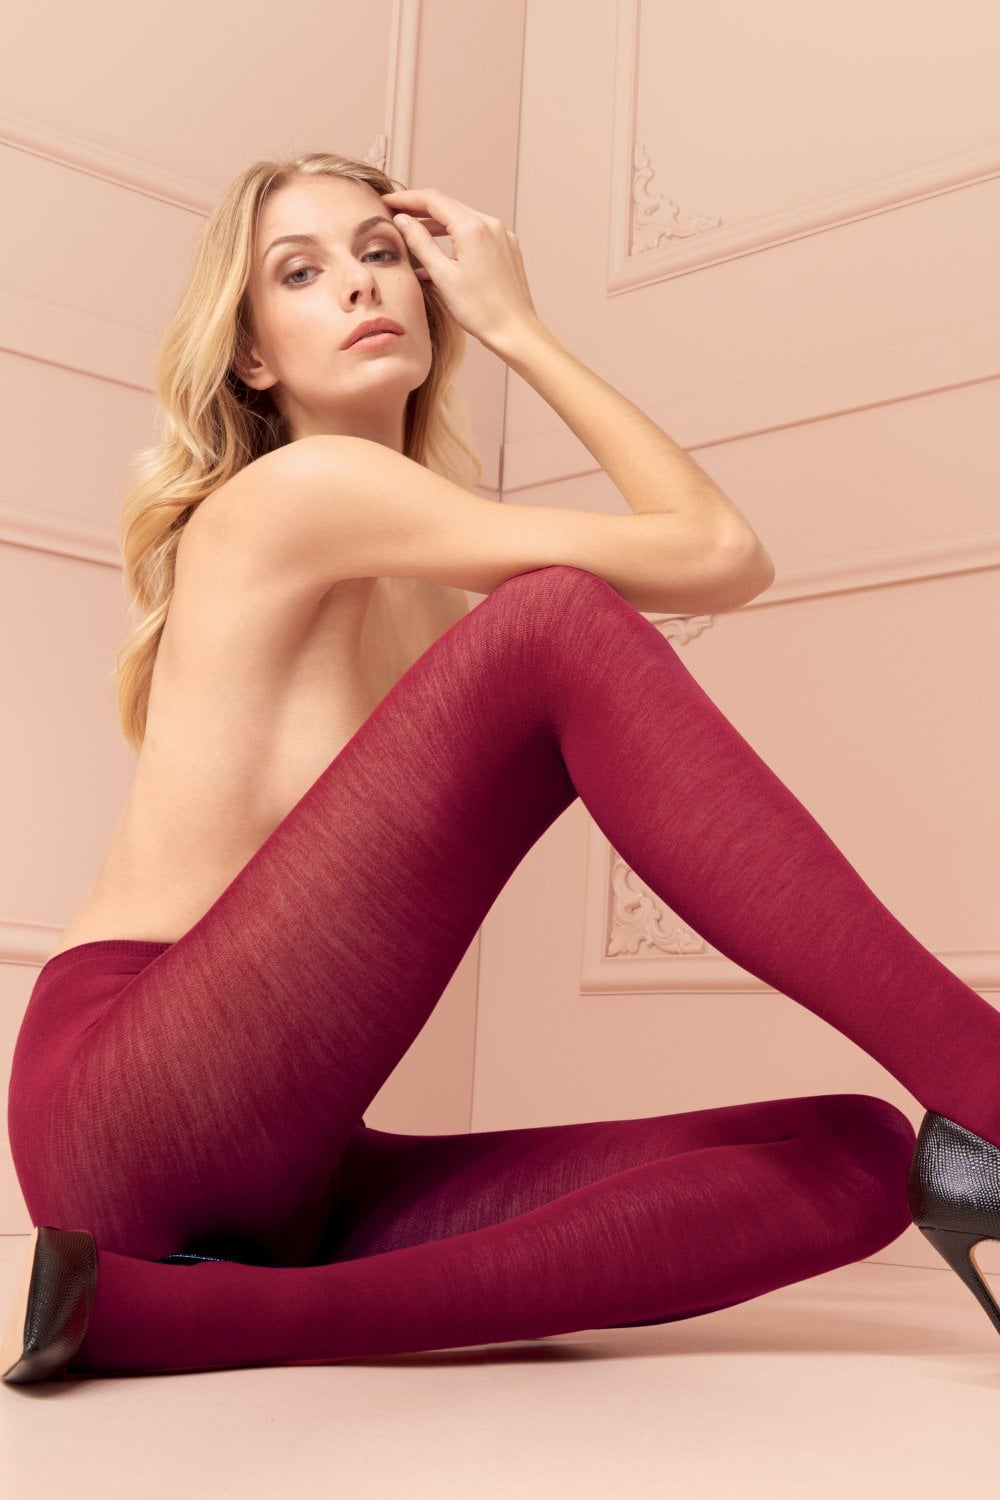 cf5d400e8 Gennifer Merino Wool Tights by Trasparenze